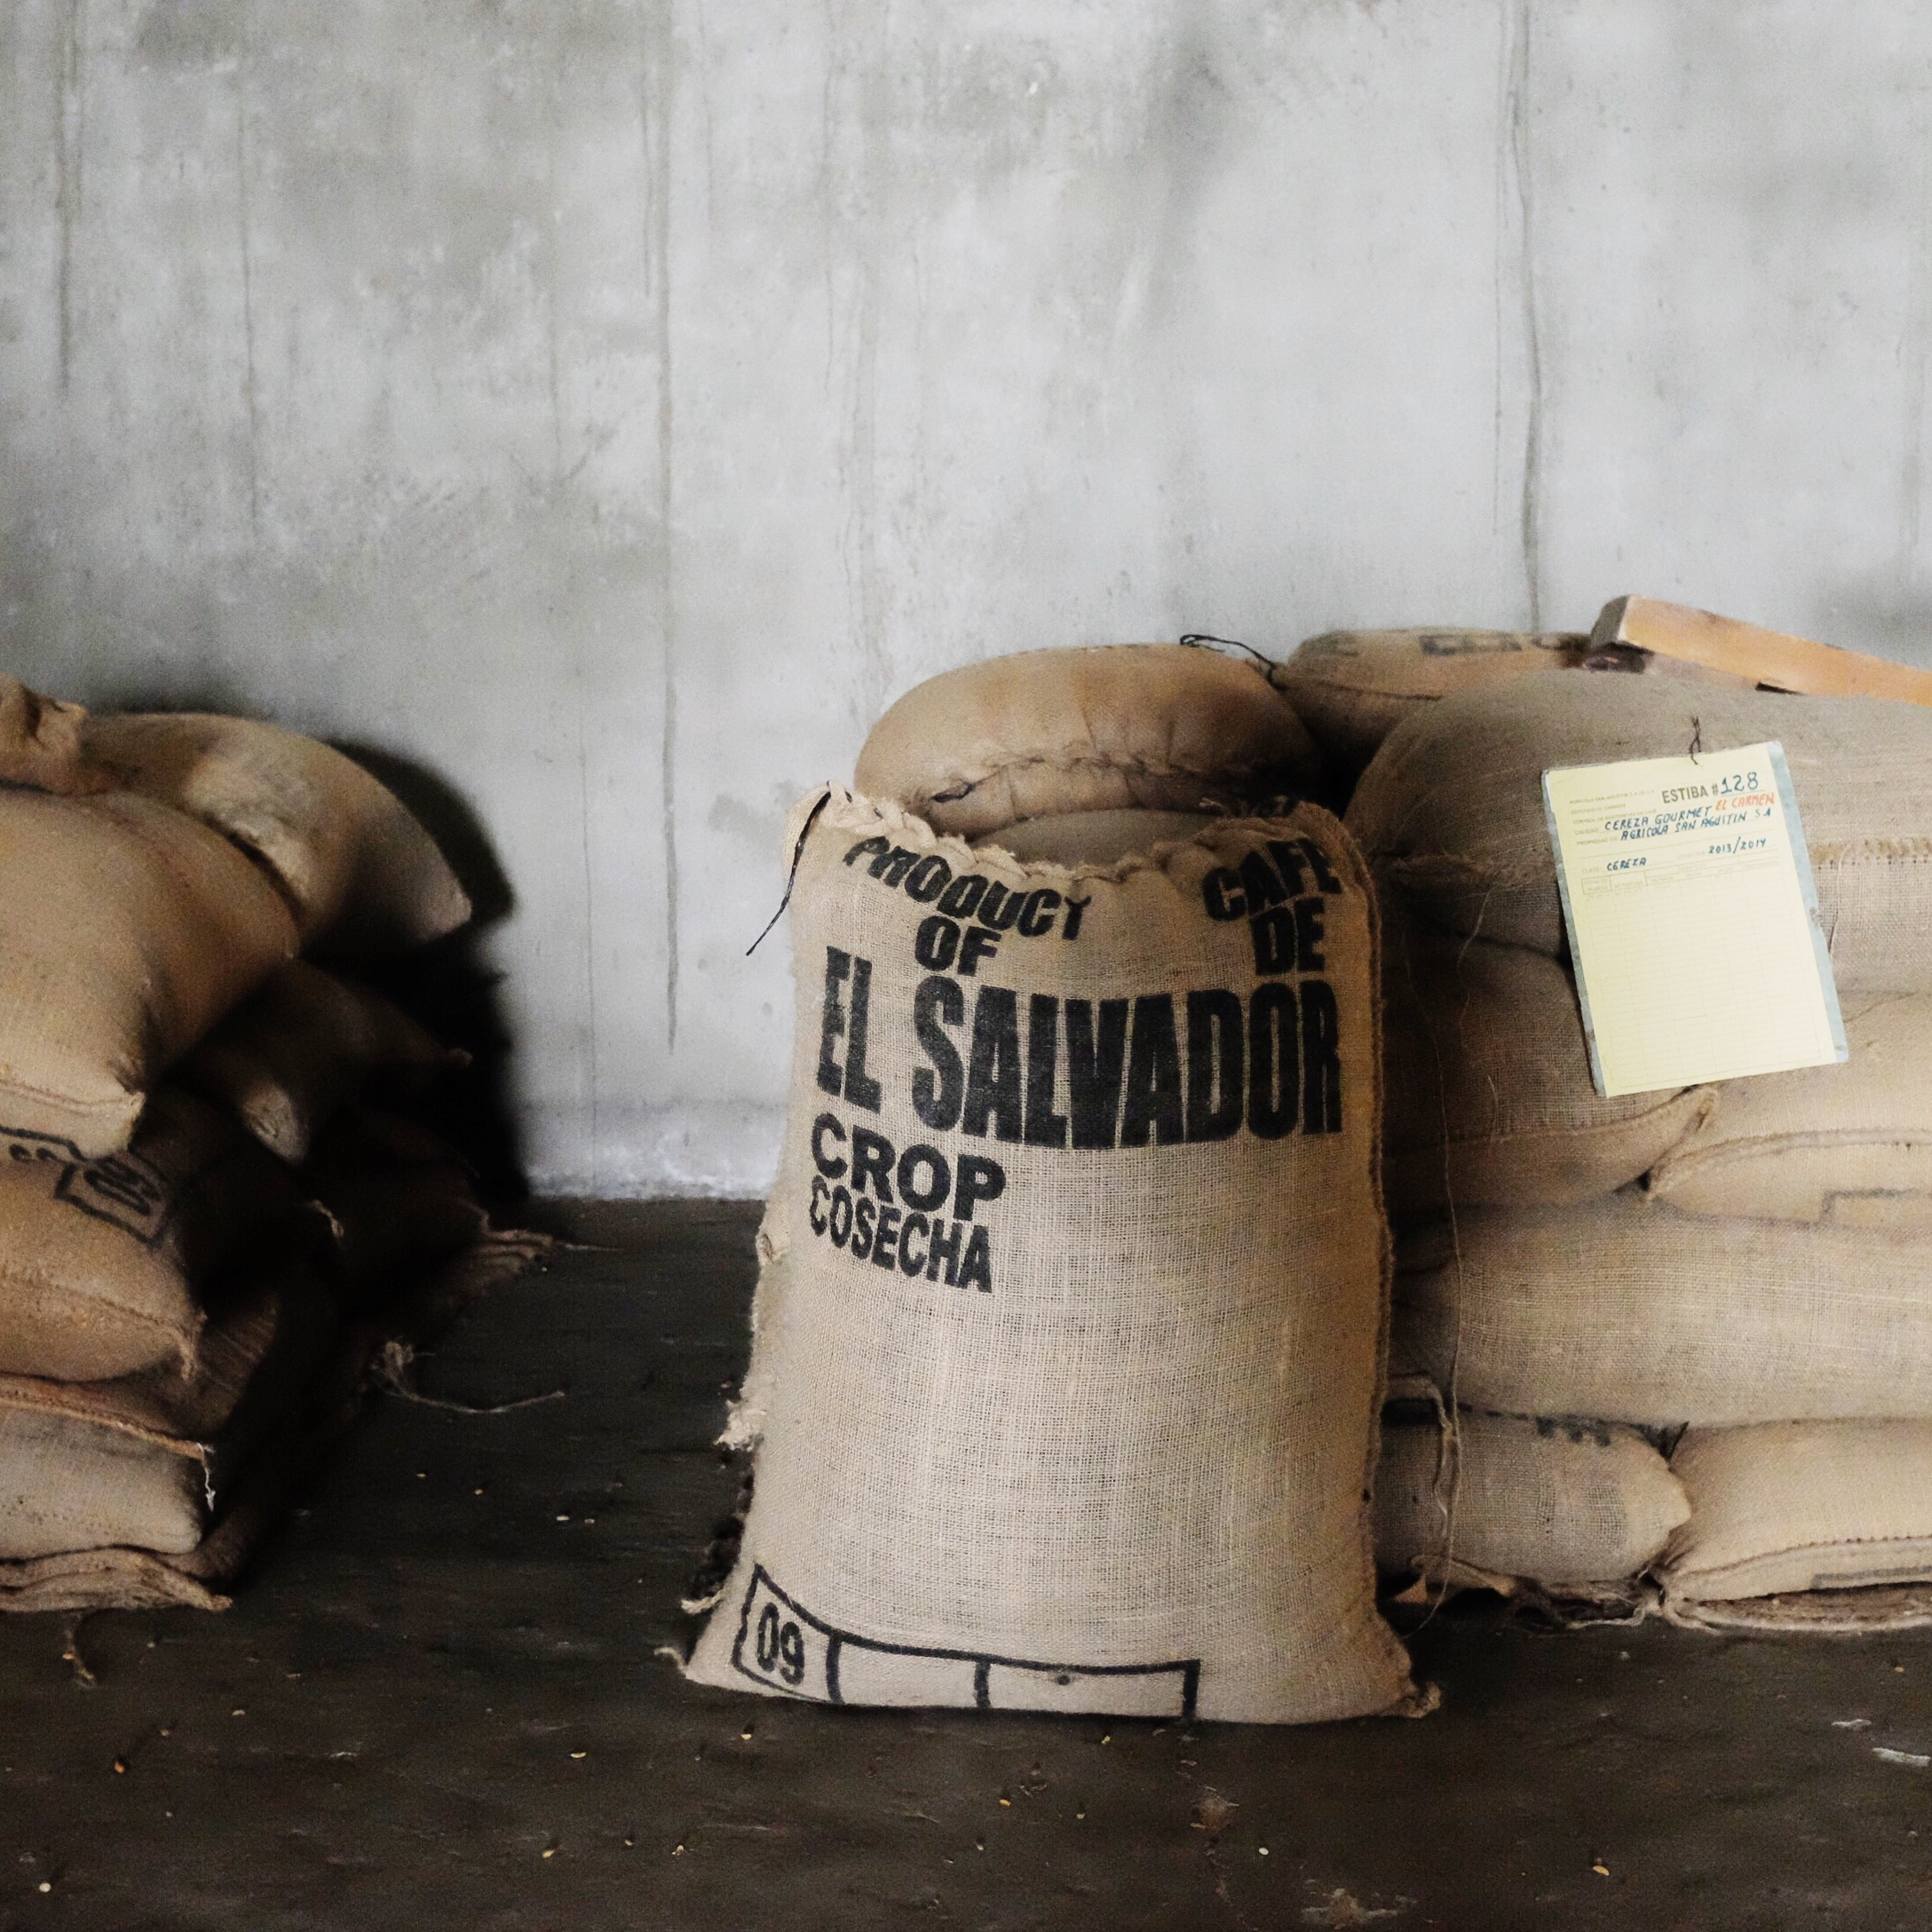 Coffee beans bagged and ready to be exported.